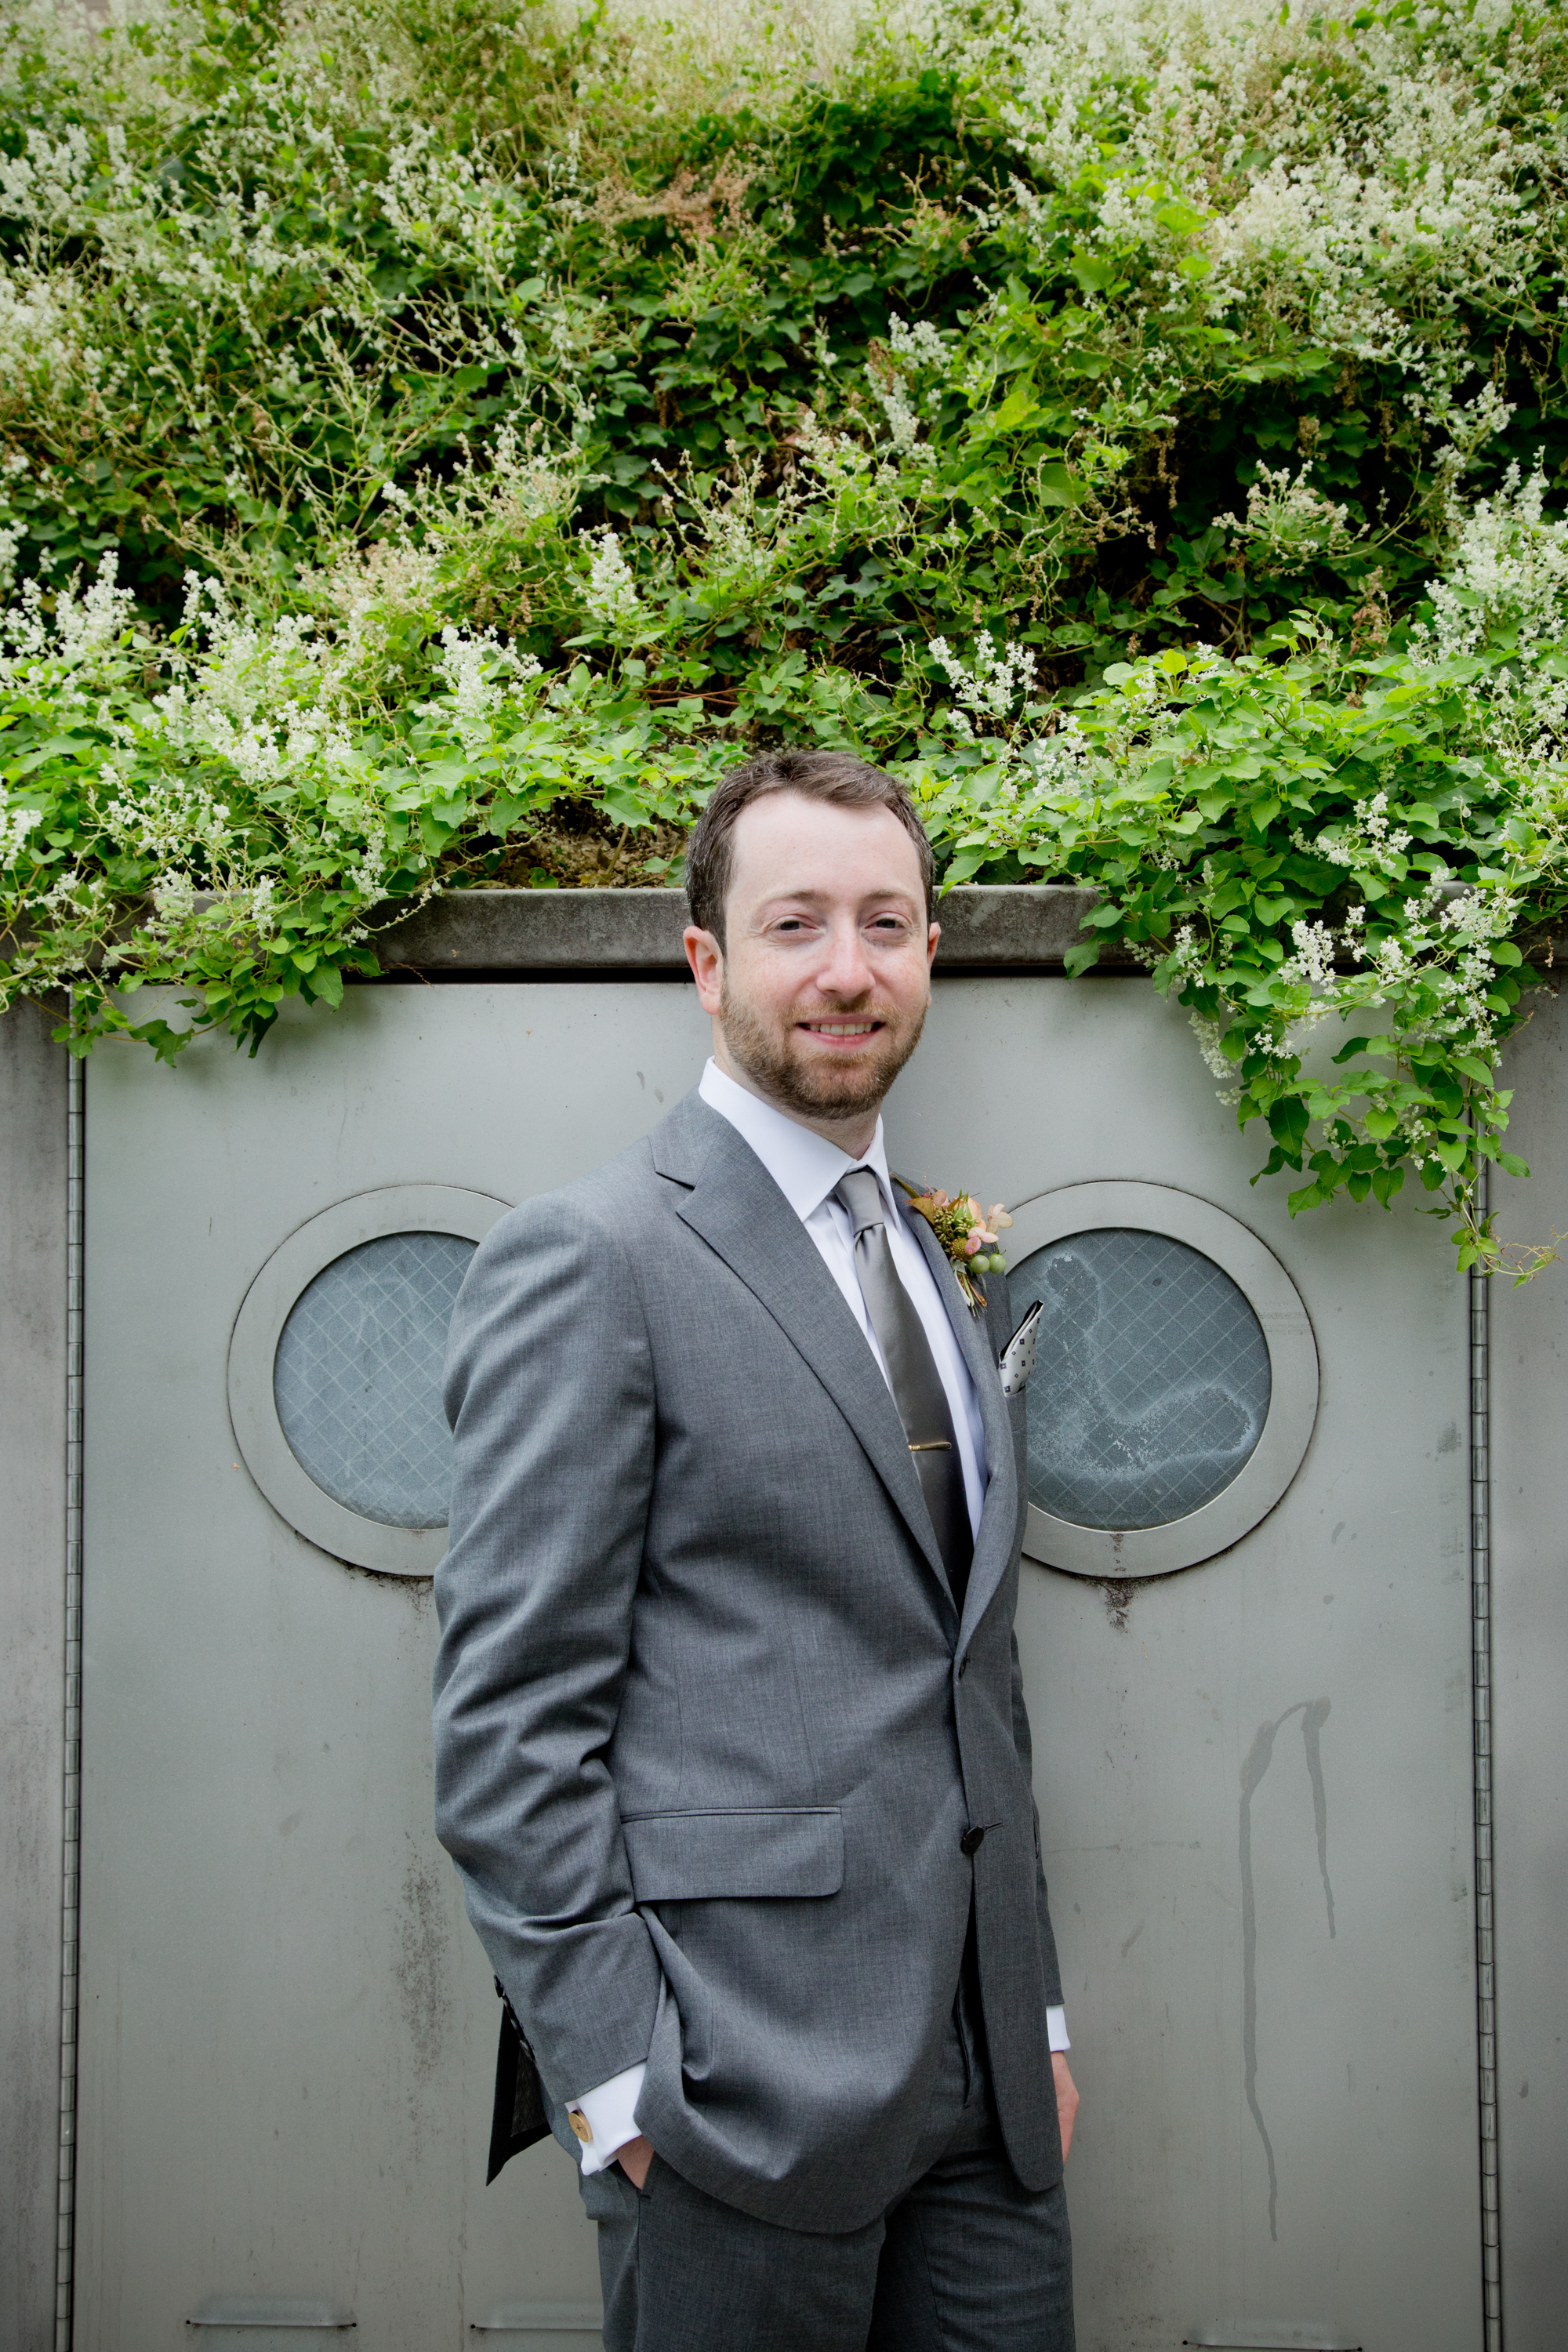 055_CarlyGaebe_SteadfastStudio_WeddingPhotography_Readyluck_NewYorkCity_Brooklyn_LongIslandCity_GantryStatePark_EastRiver_Waterfront_Fall_Groom.jpg